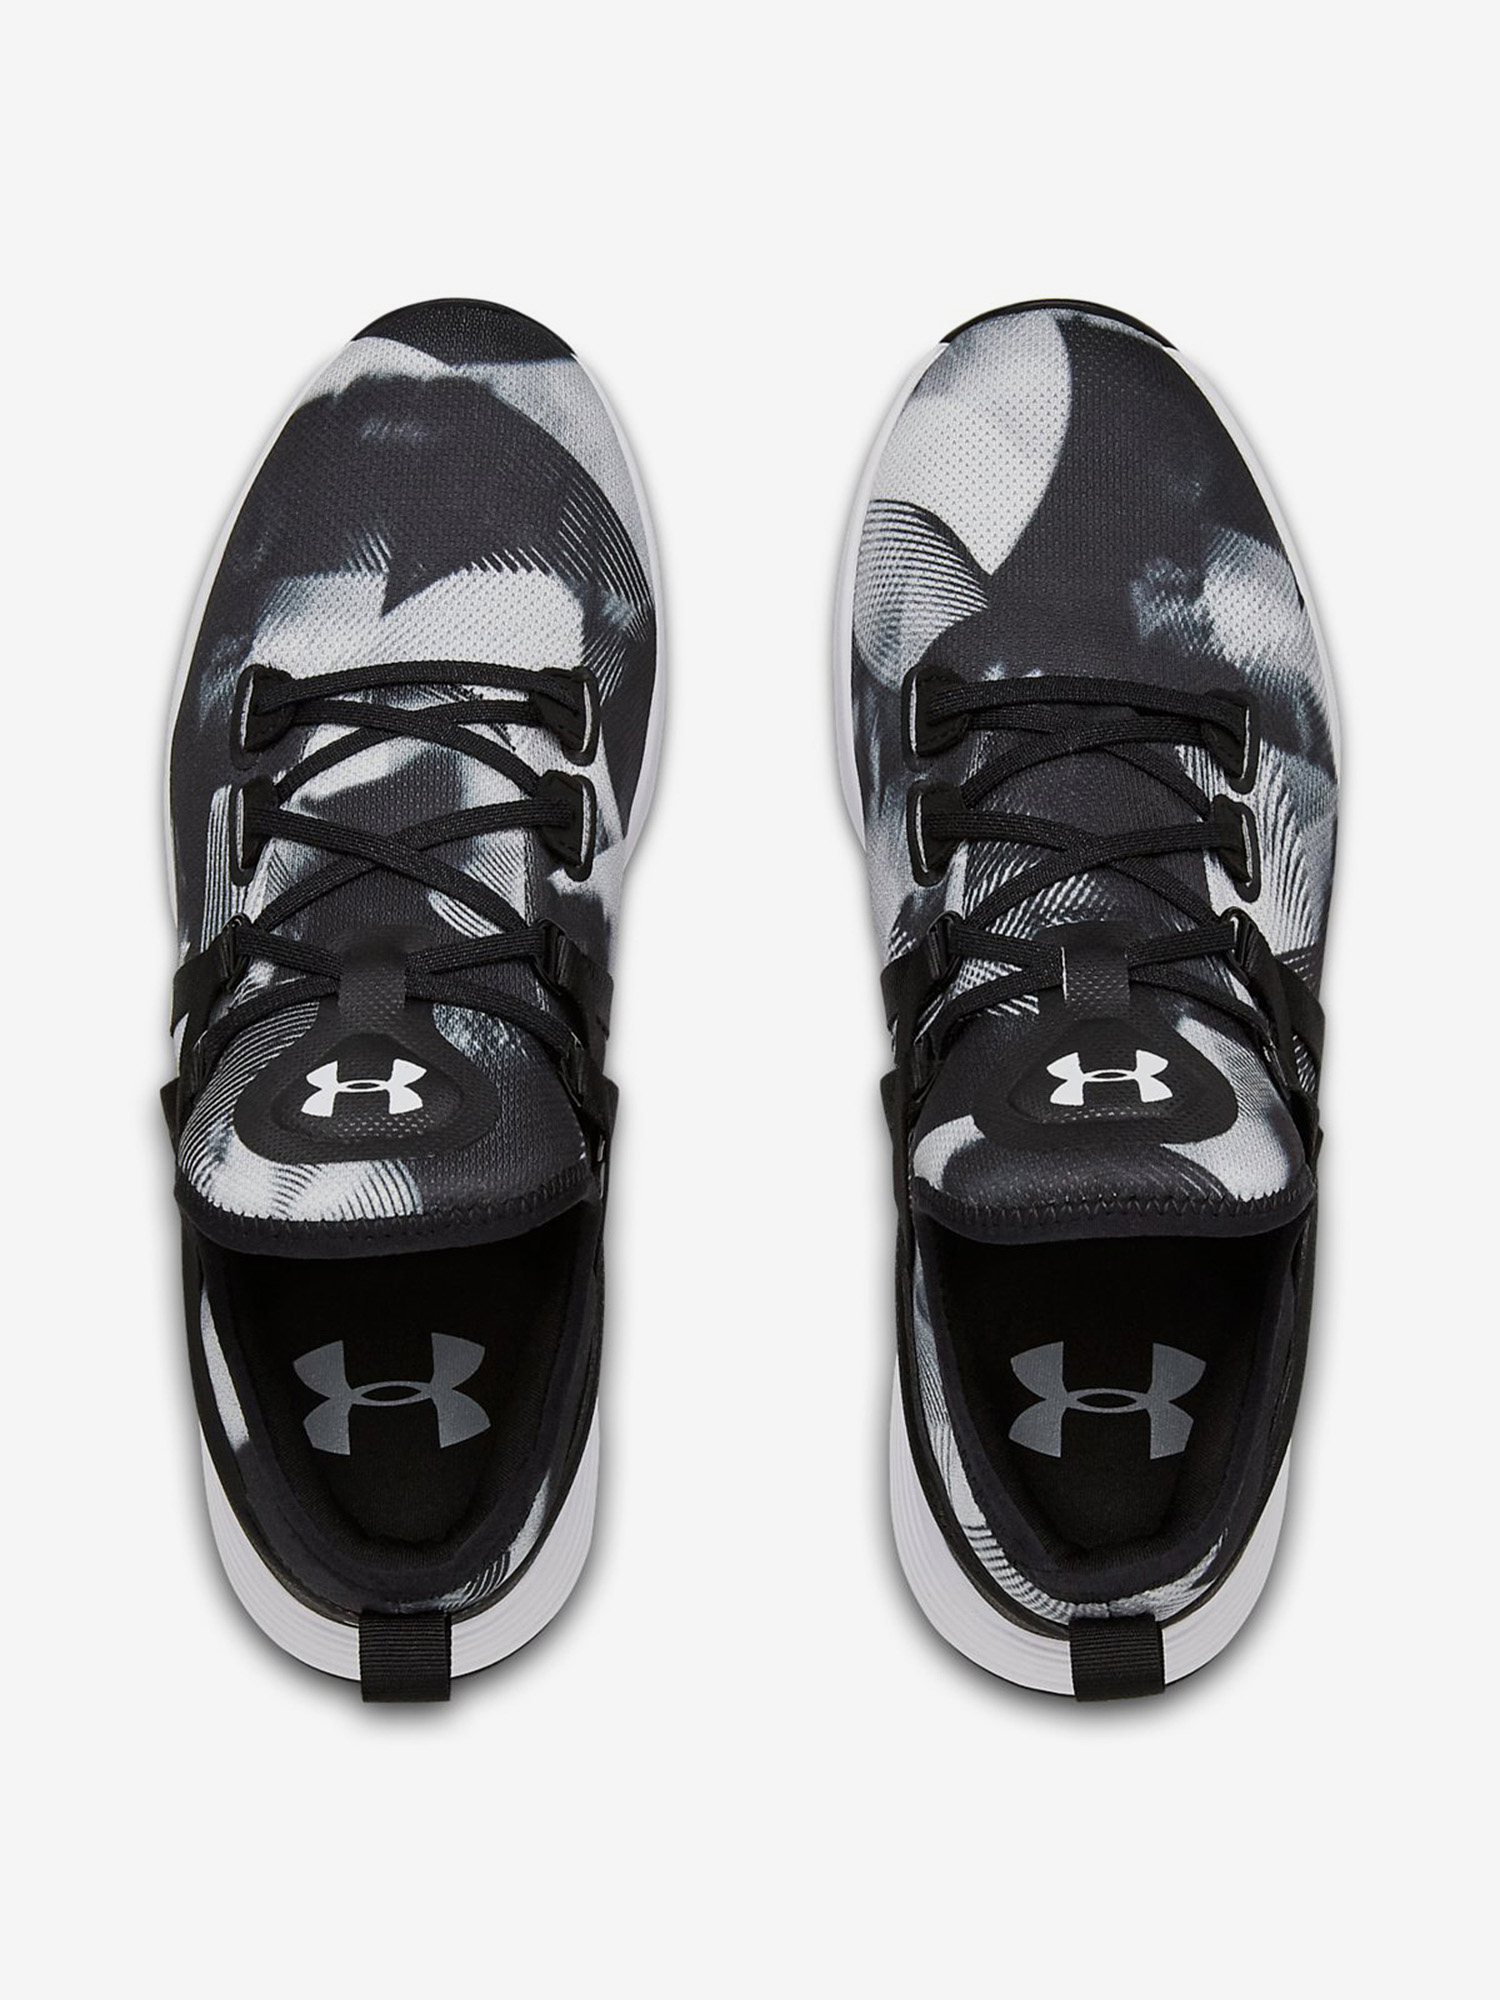 Boty Under Armour W Breathe Trainer Prnt-Blk (5)